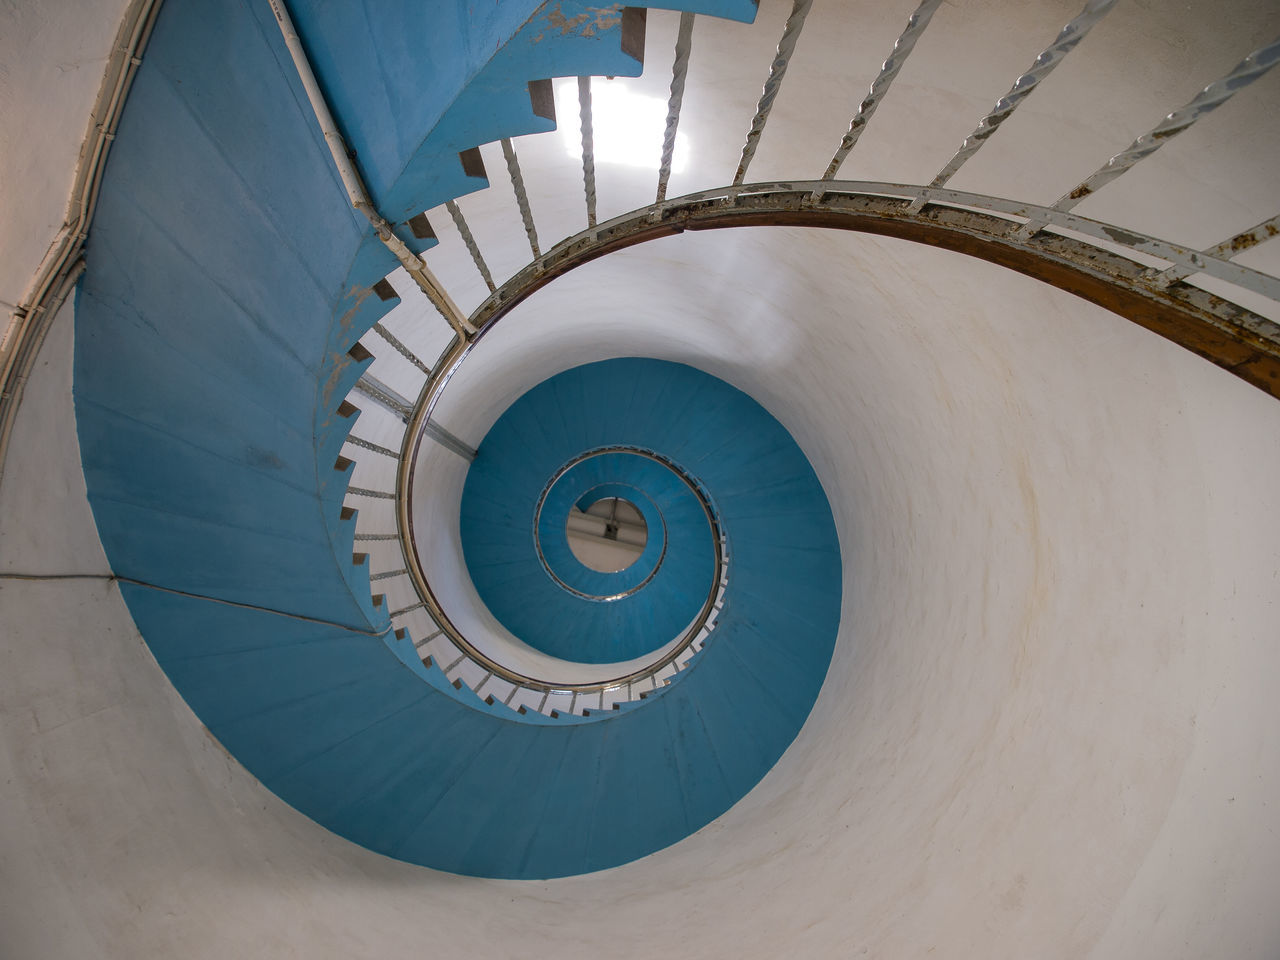 Architectural Feature Architecture Building Denmark Geometric Shape Lighthouse No People Spiral Spiral Staircase Staircase Steps And Staircases